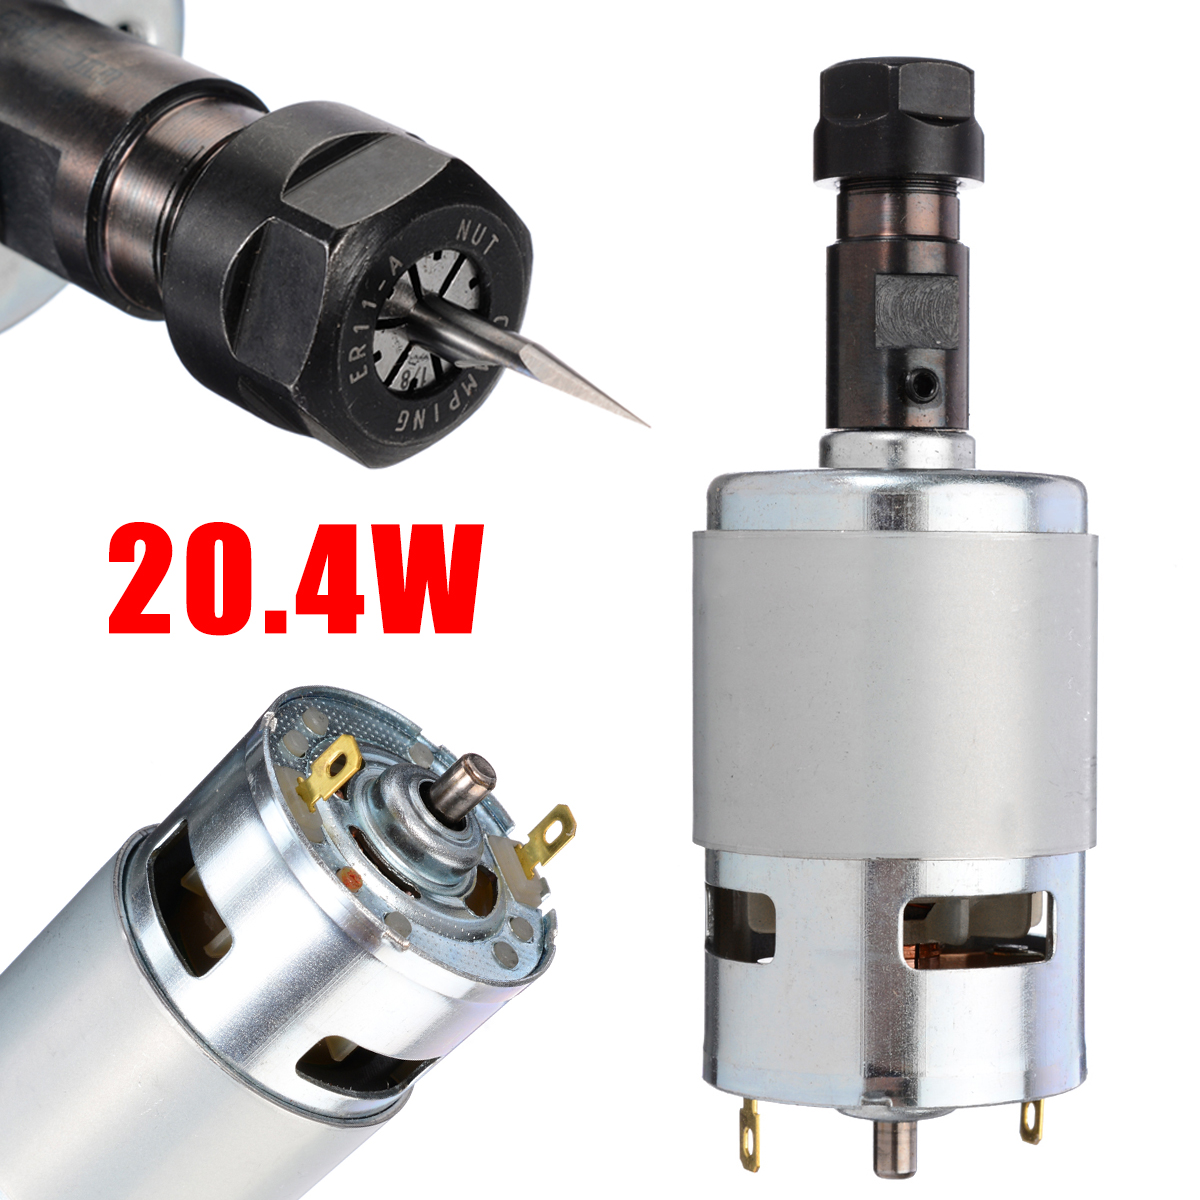 775 DC Motor 12-36V with ER11 Spindle Replacement Part for CNC Router Machine Router Machine Motor Engraving Machine Motor775 DC Motor 12-36V with ER11 Spindle Replacement Part for CNC Router Machine Router Machine Motor Engraving Machine Motor